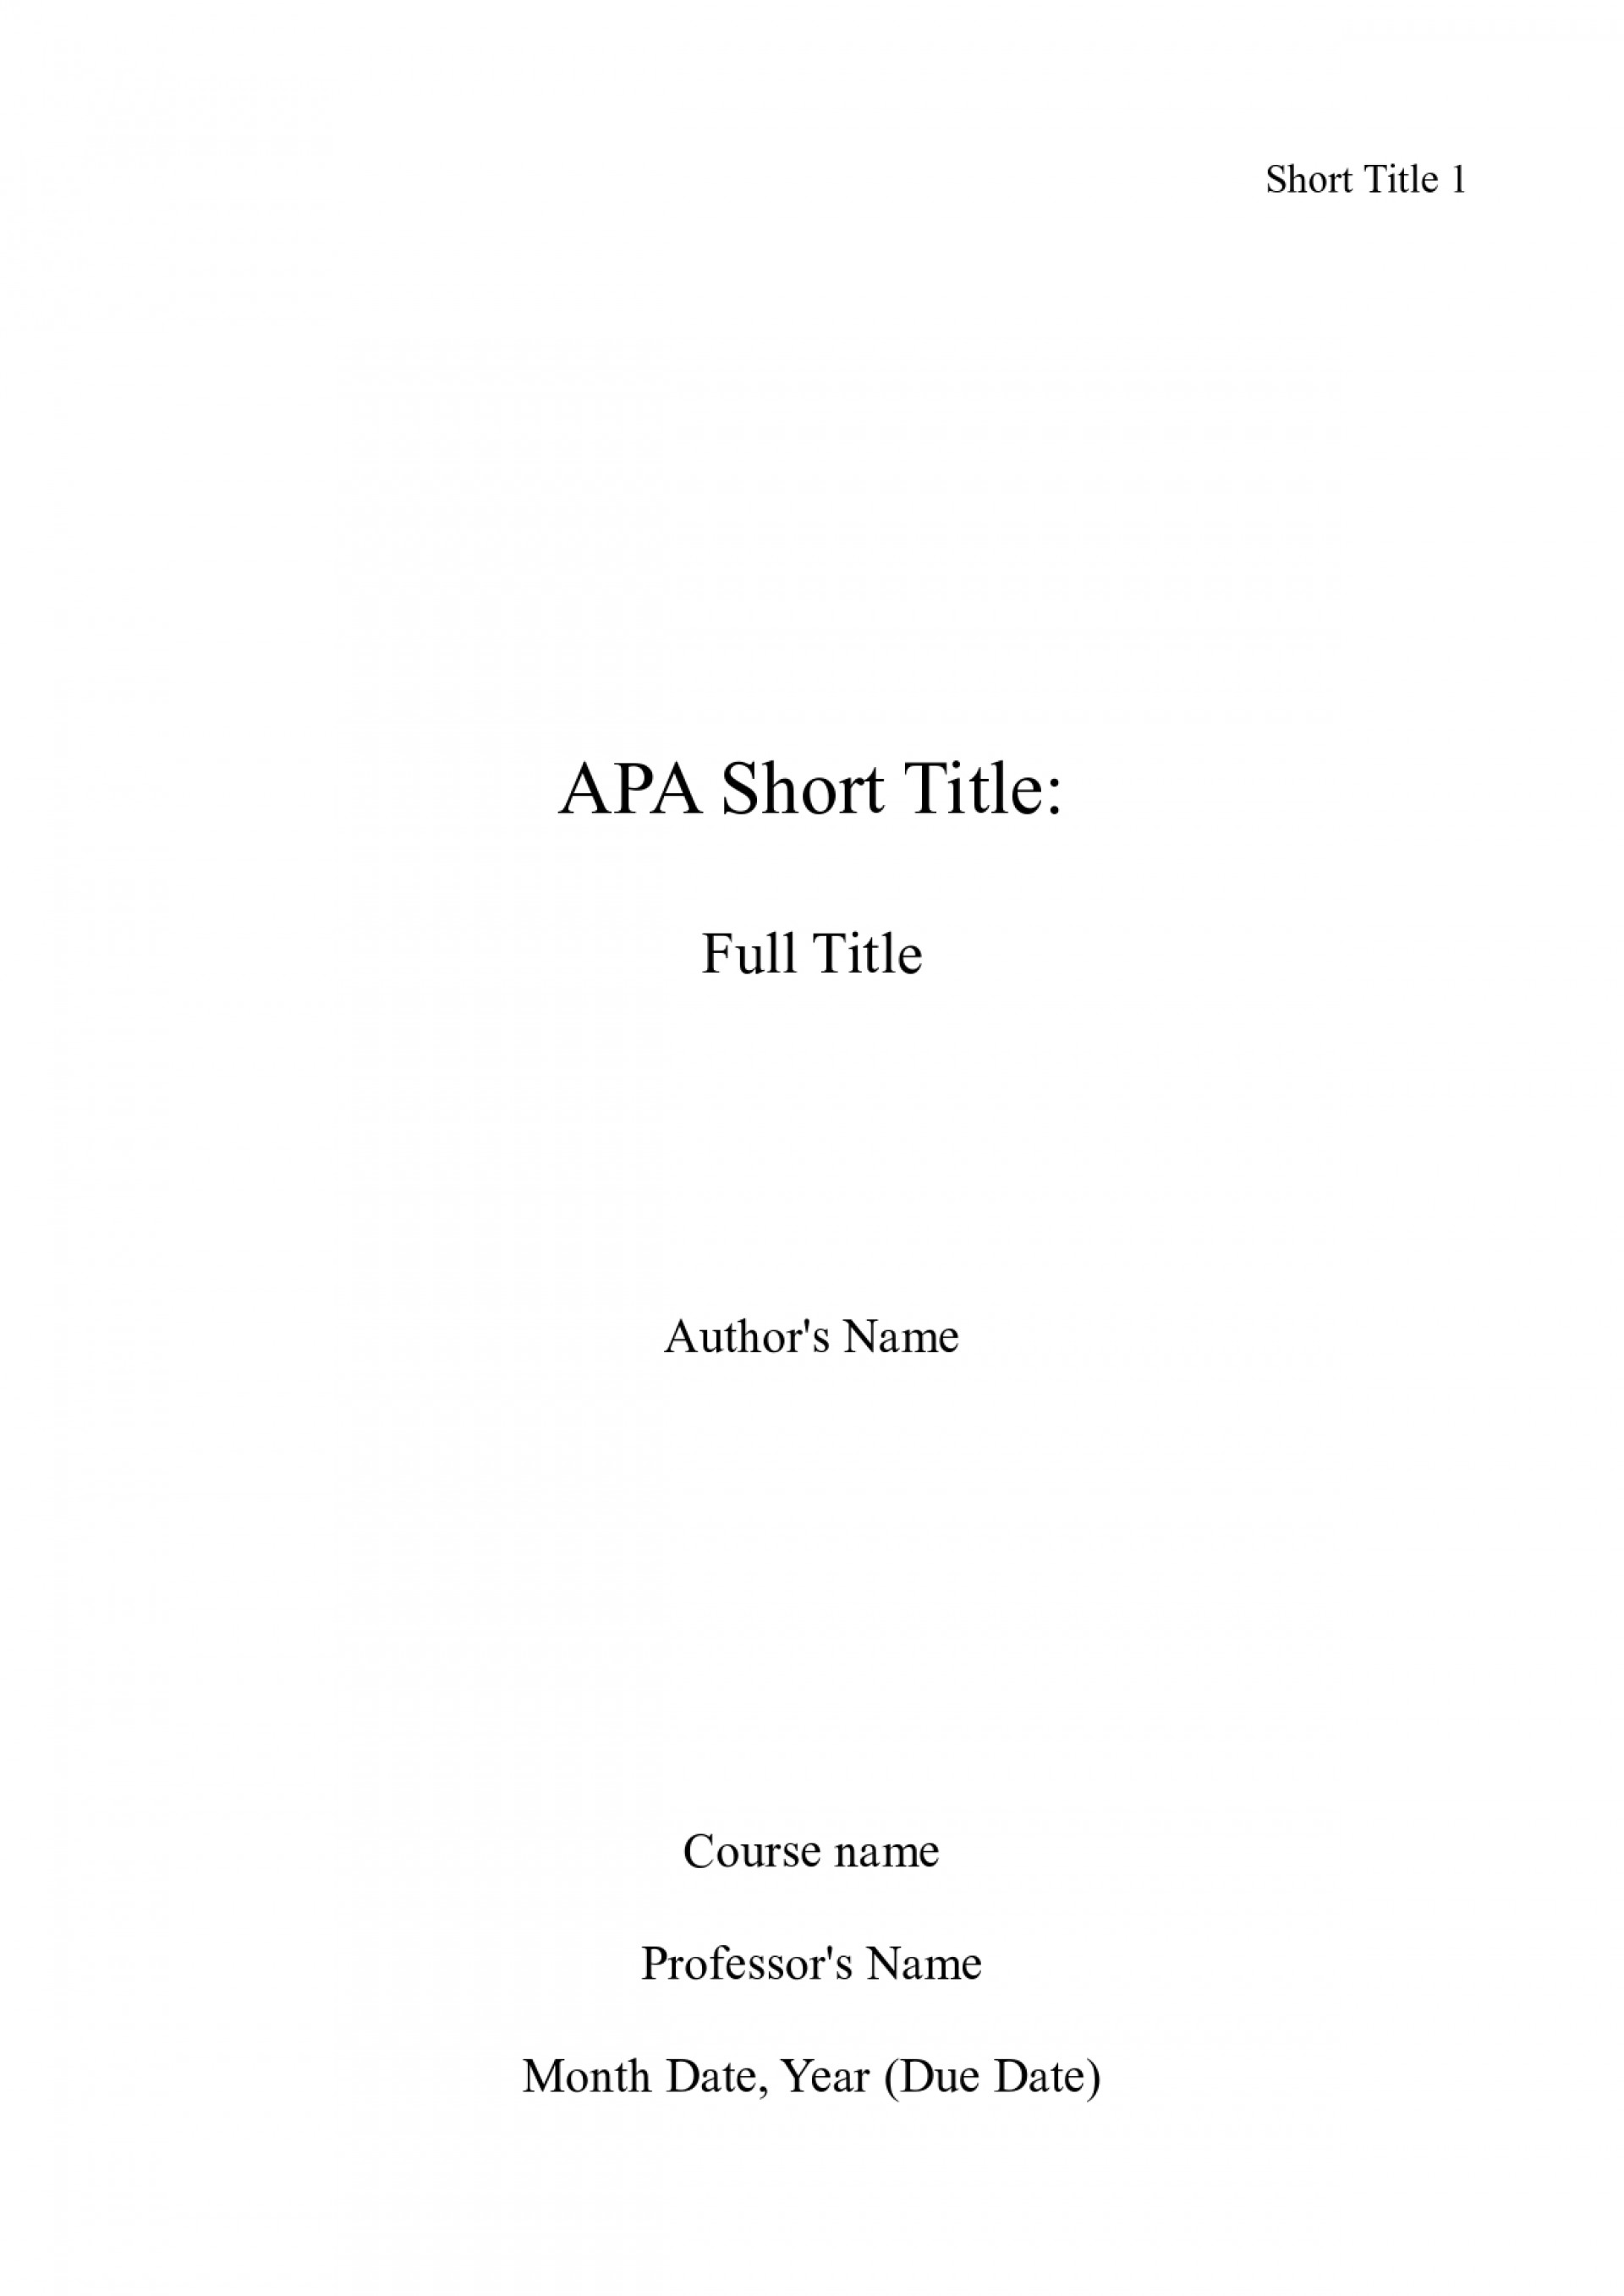 001 Apa Title Page Sample Essay Example Cover Sheet Shocking For Word An Format Mla 1920